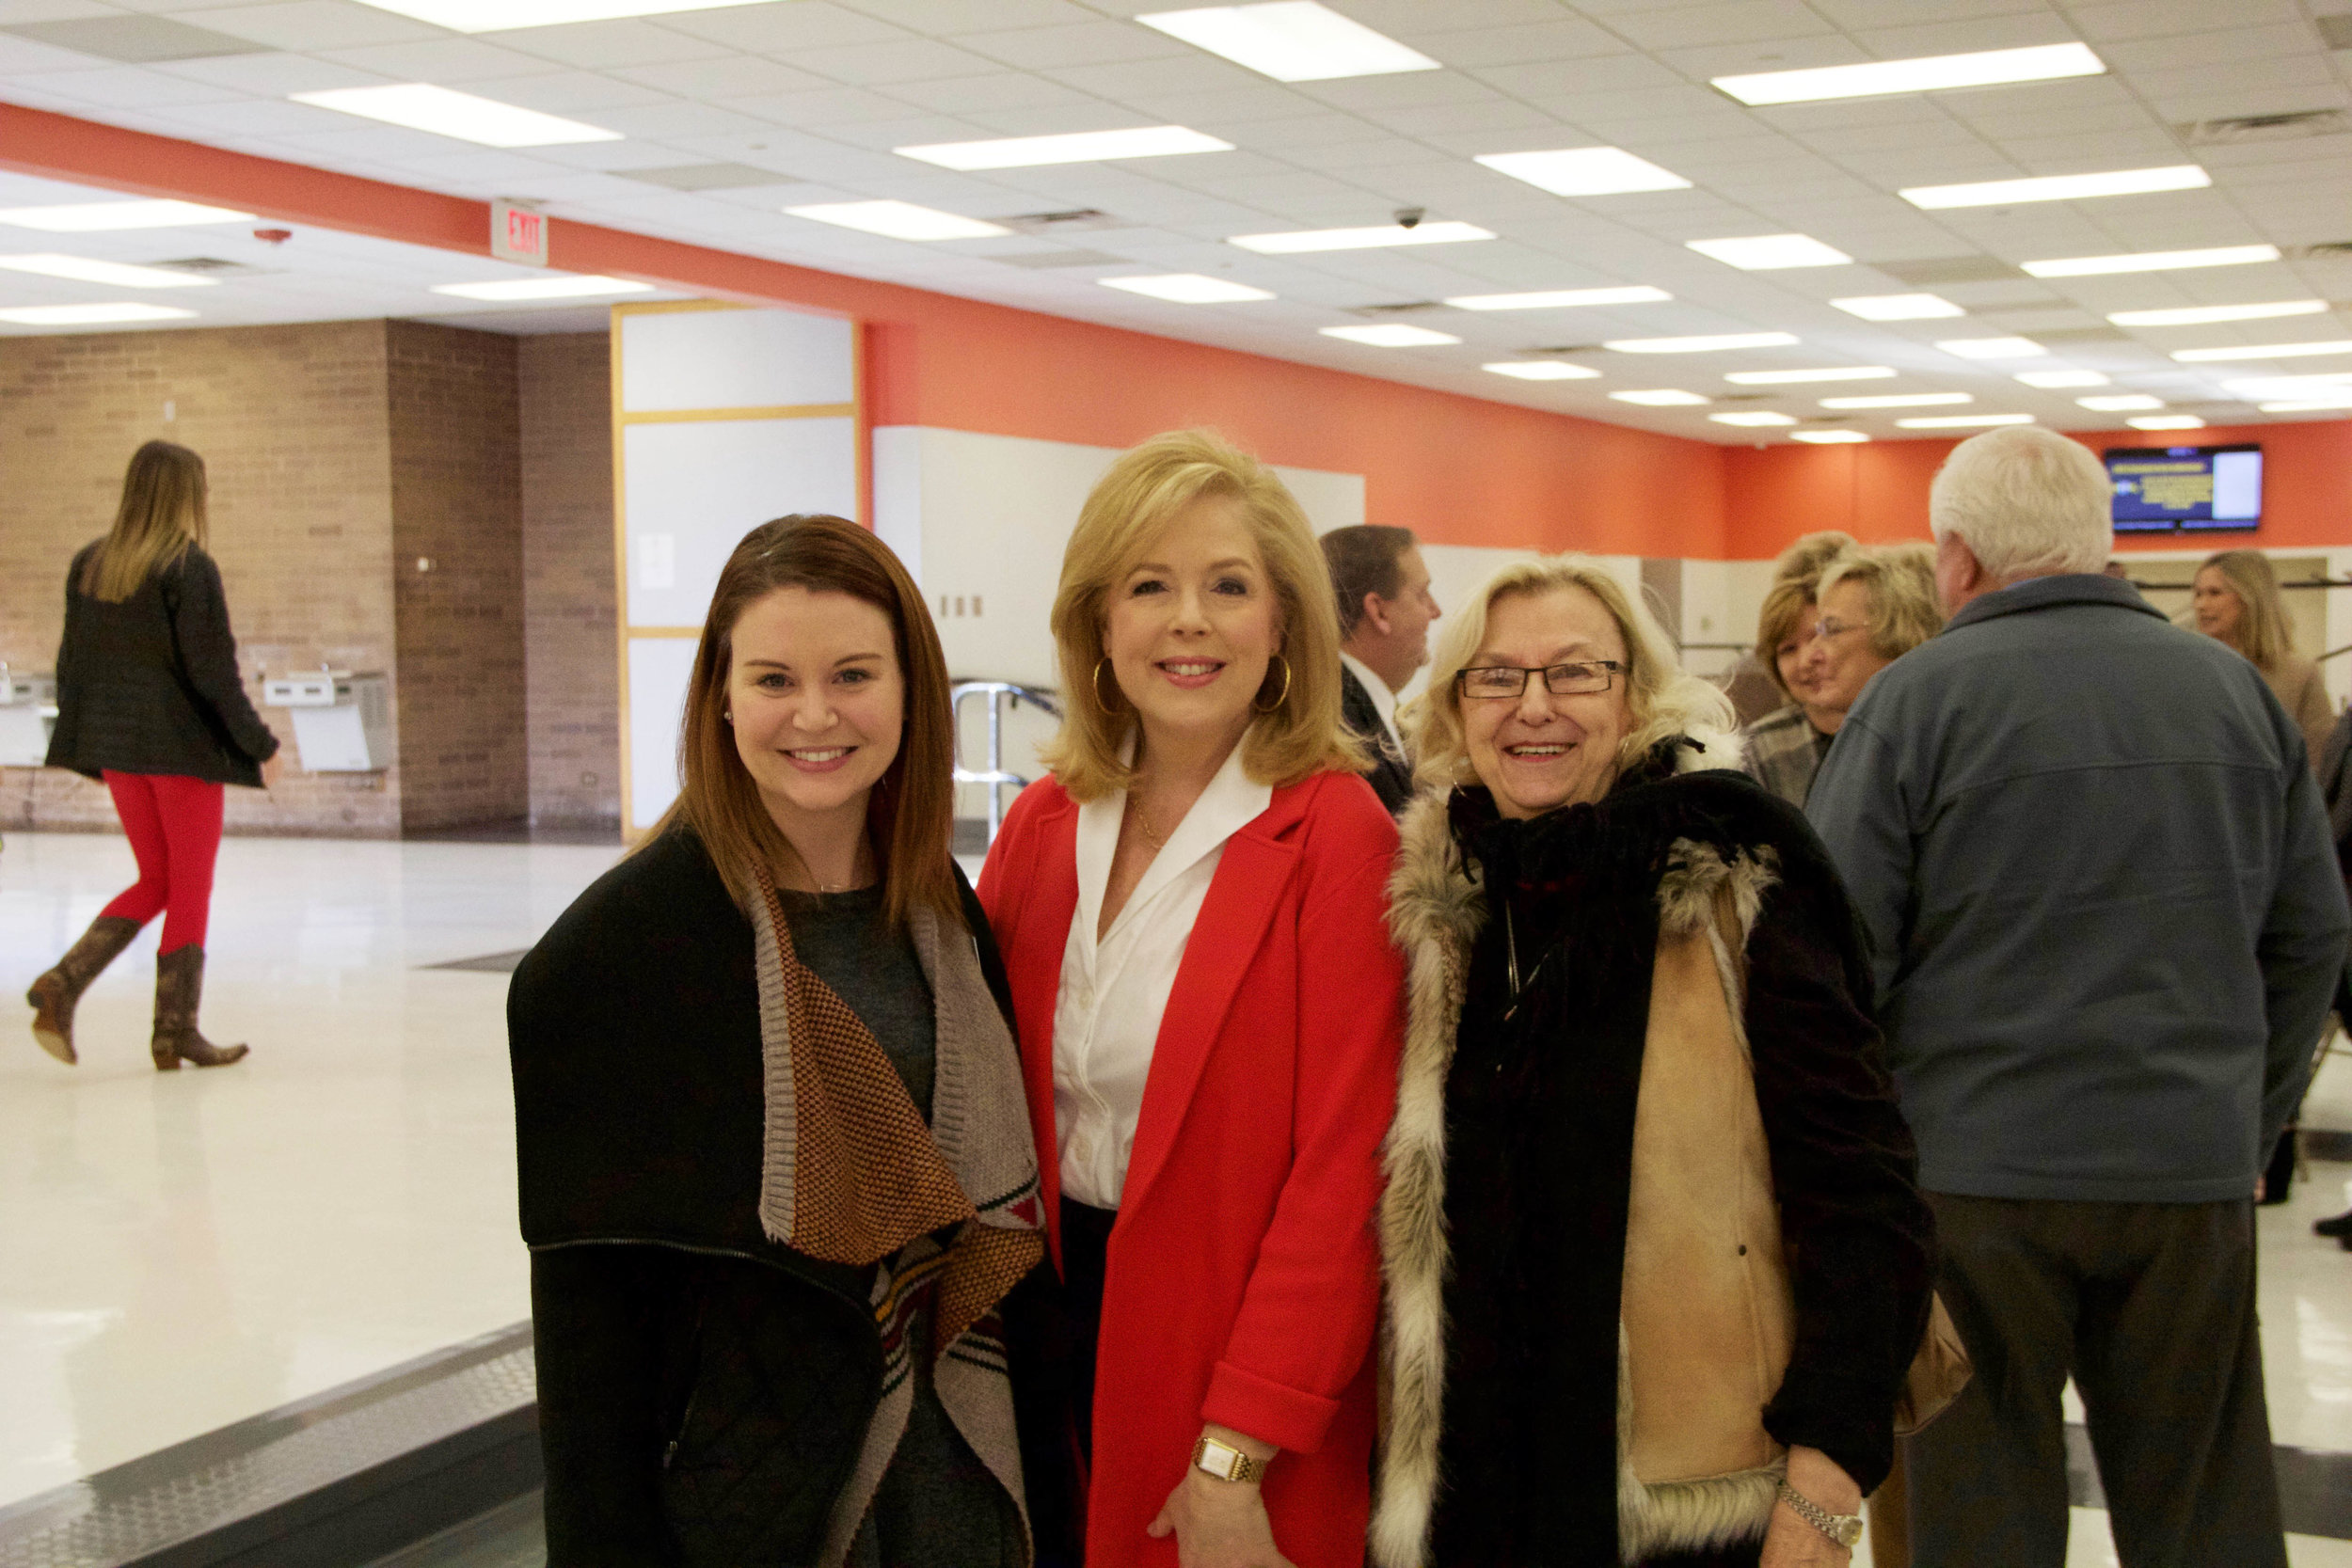 Whitney Farmer, Melanie Cockerell and Nancy Tullos